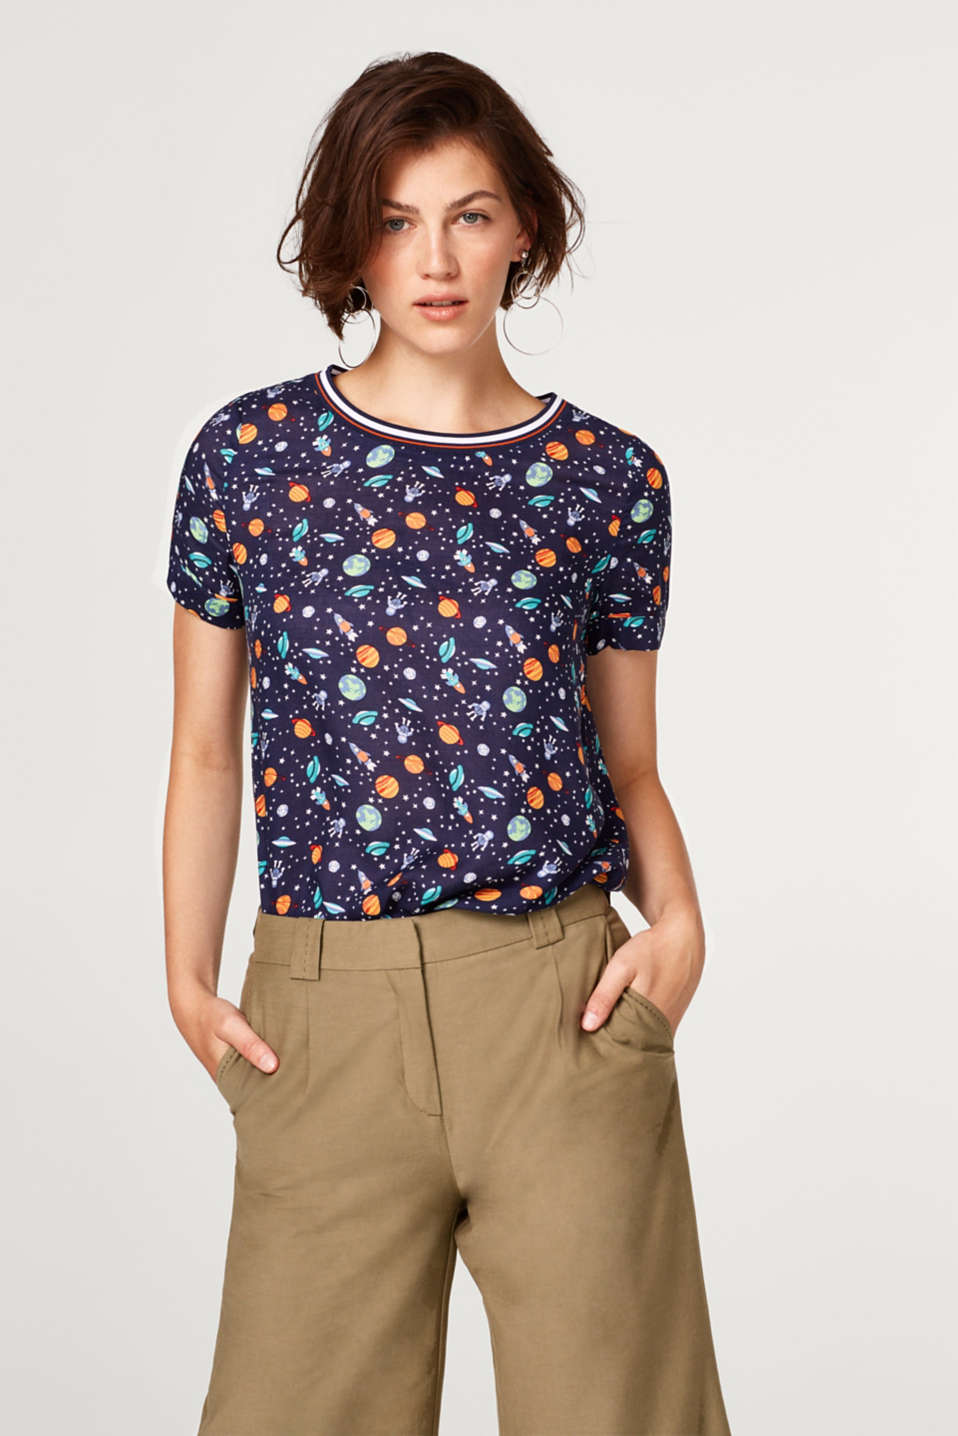 edc - Blouse top with a space print